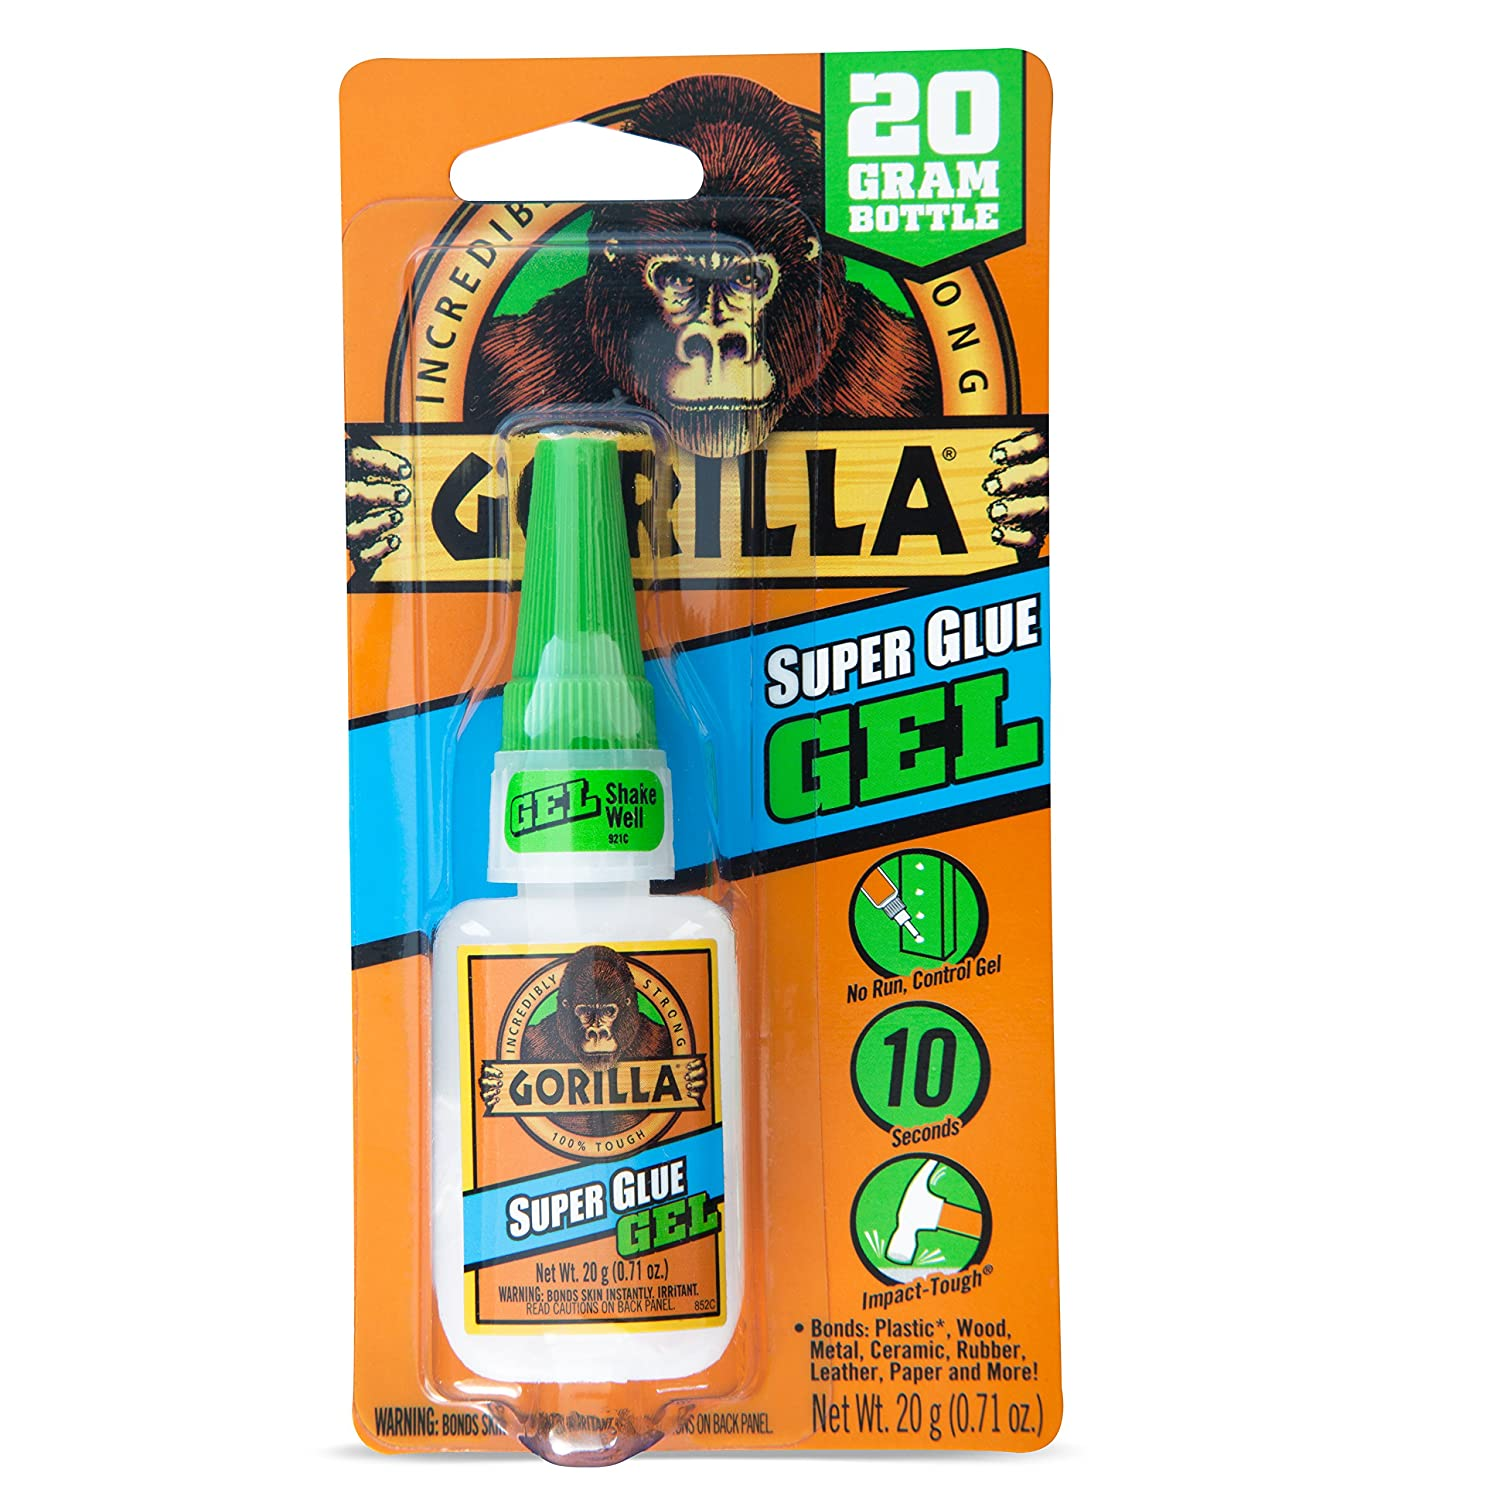 Gorilla Super Glue Review